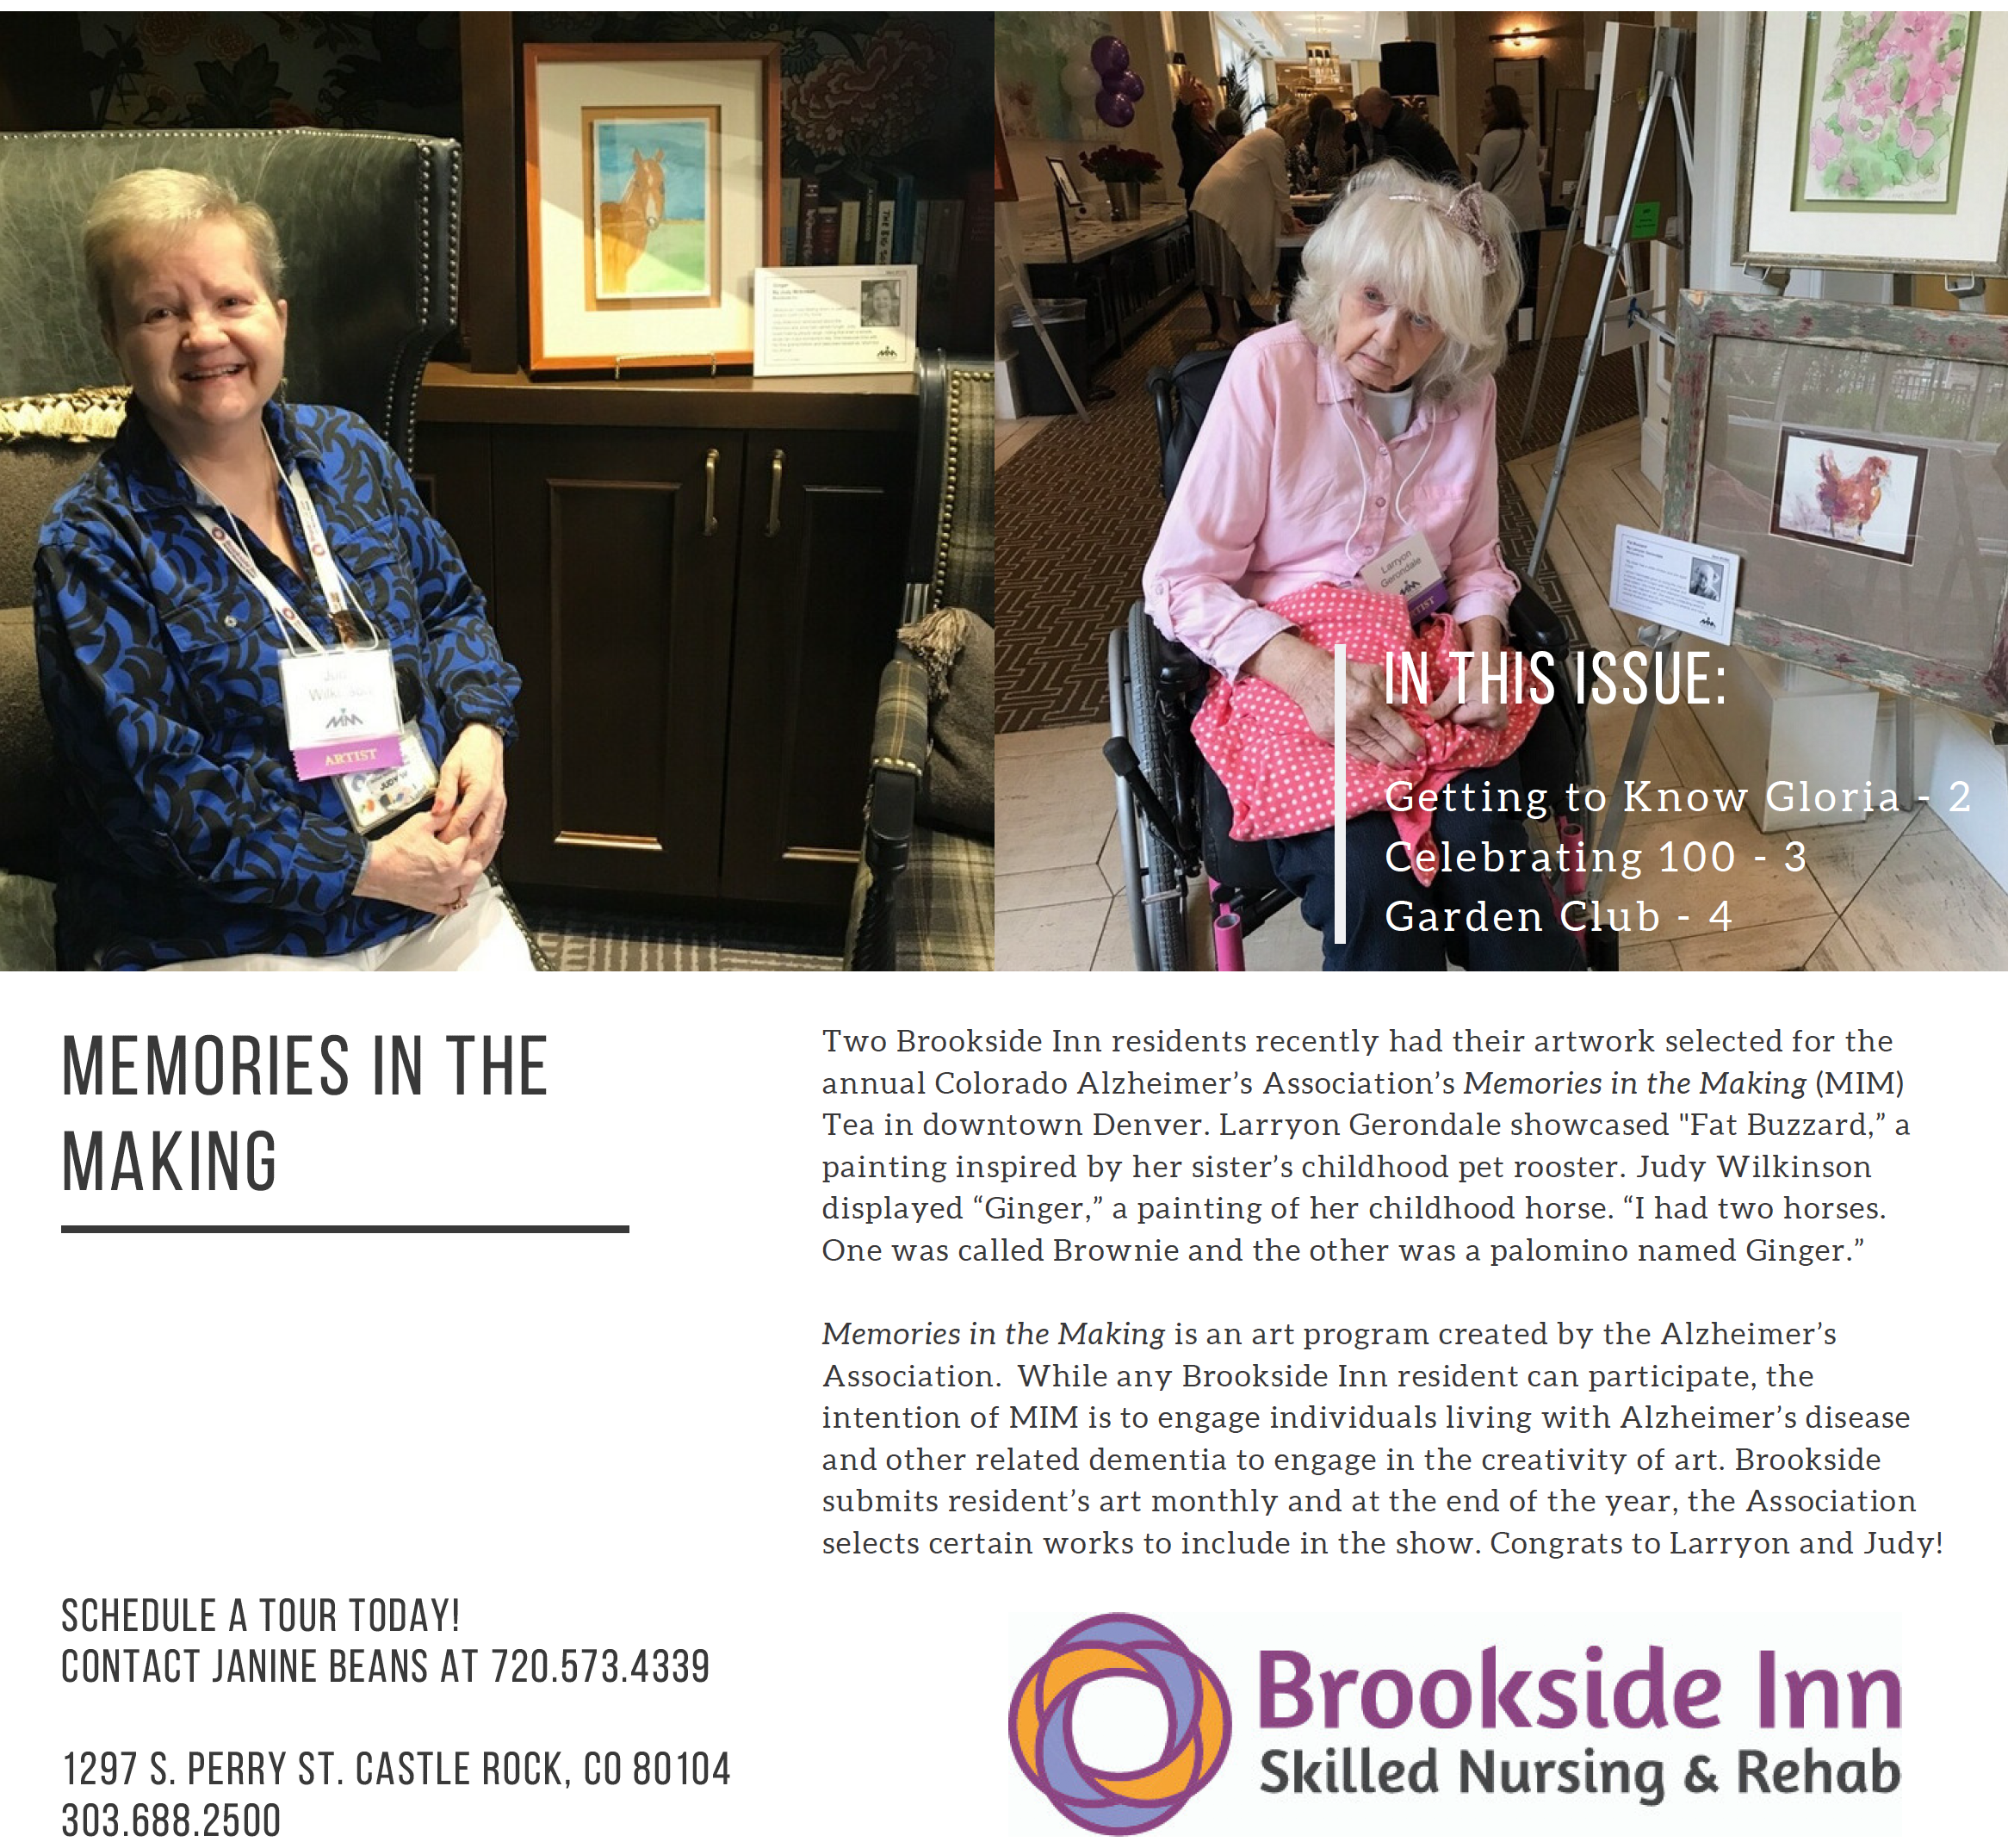 Page 1 - Memories in the Making with two Brookside Inn residents who had their artwork selected for the annual Colorado Alzheimer's Association.